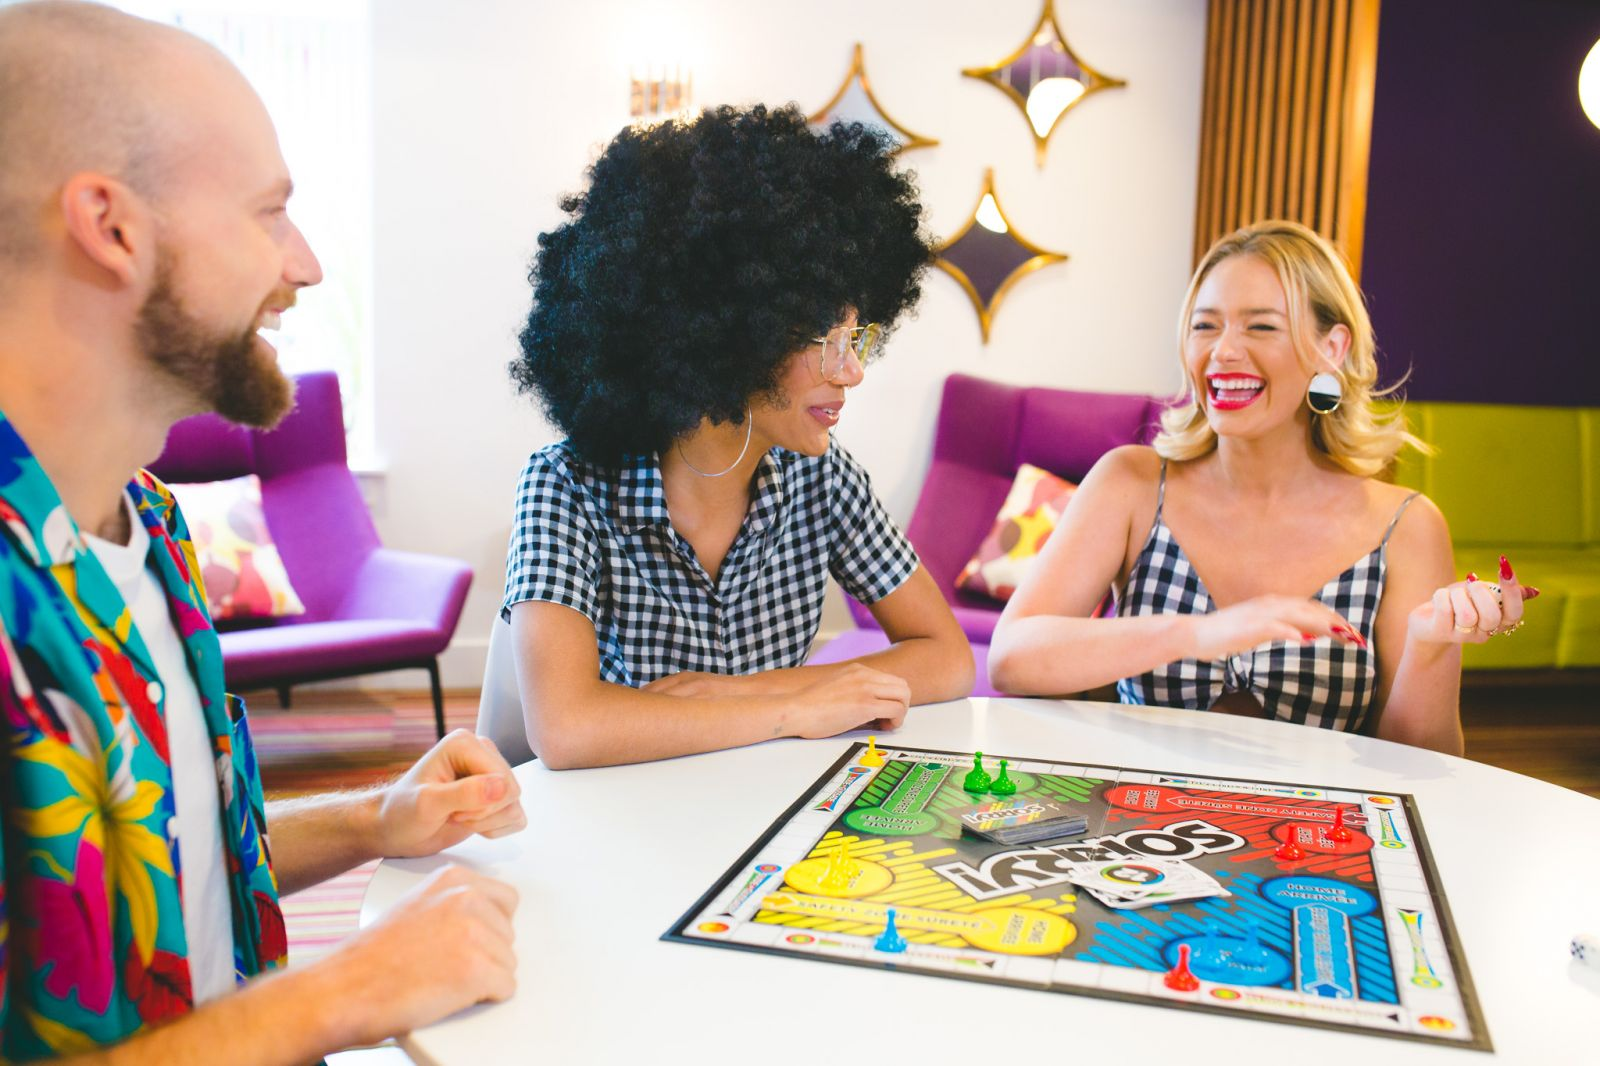 Lobby Board Games at Hotel Zed